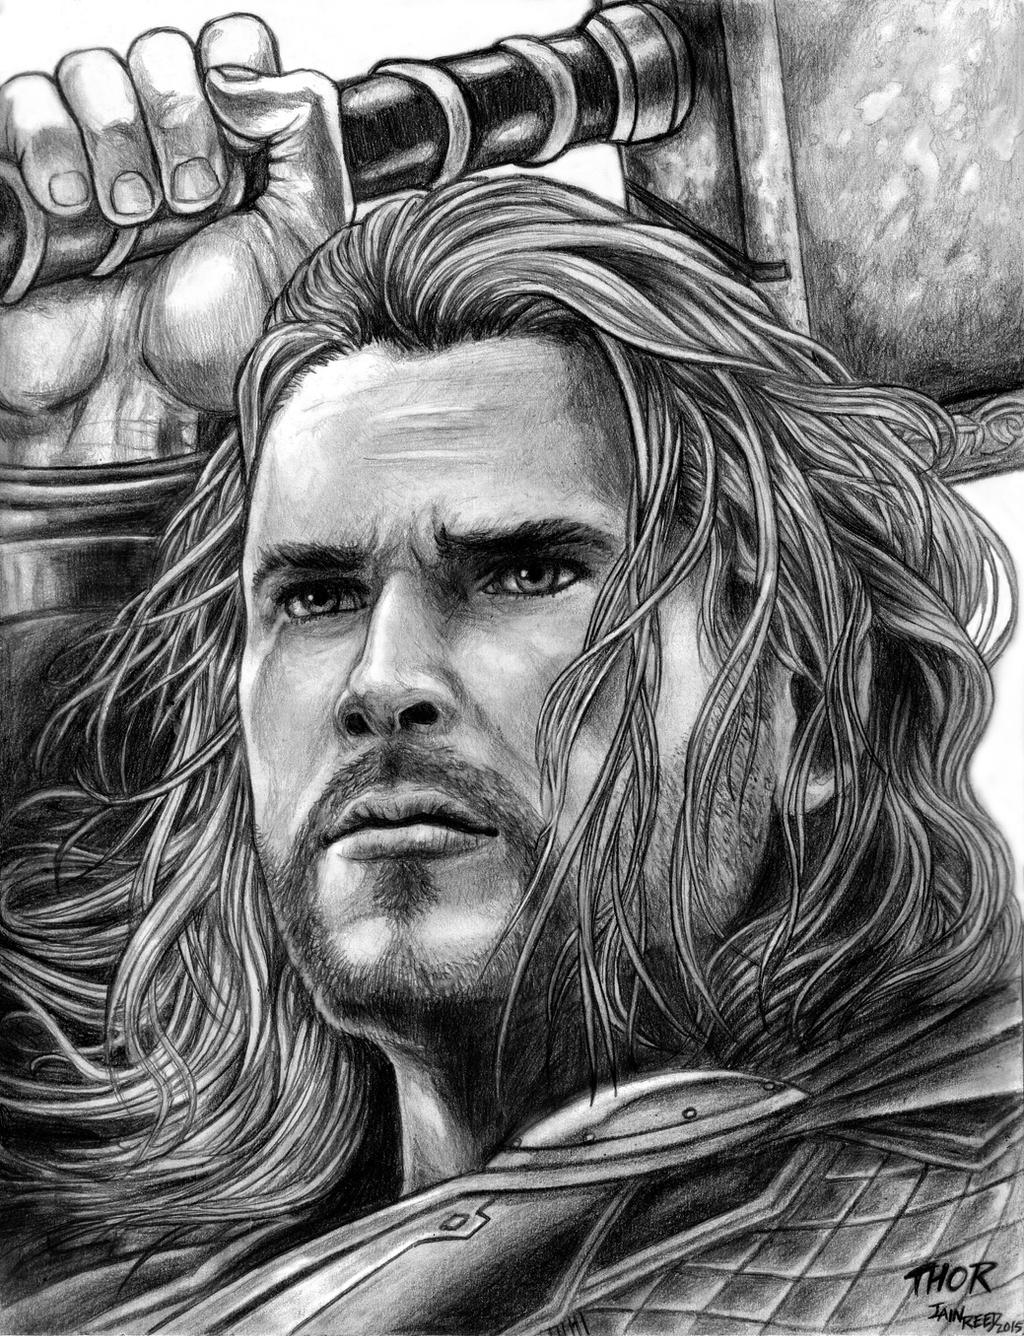 Avengers Thor Sketch | Www.pixshark.com - Images Galleries With A Bite!